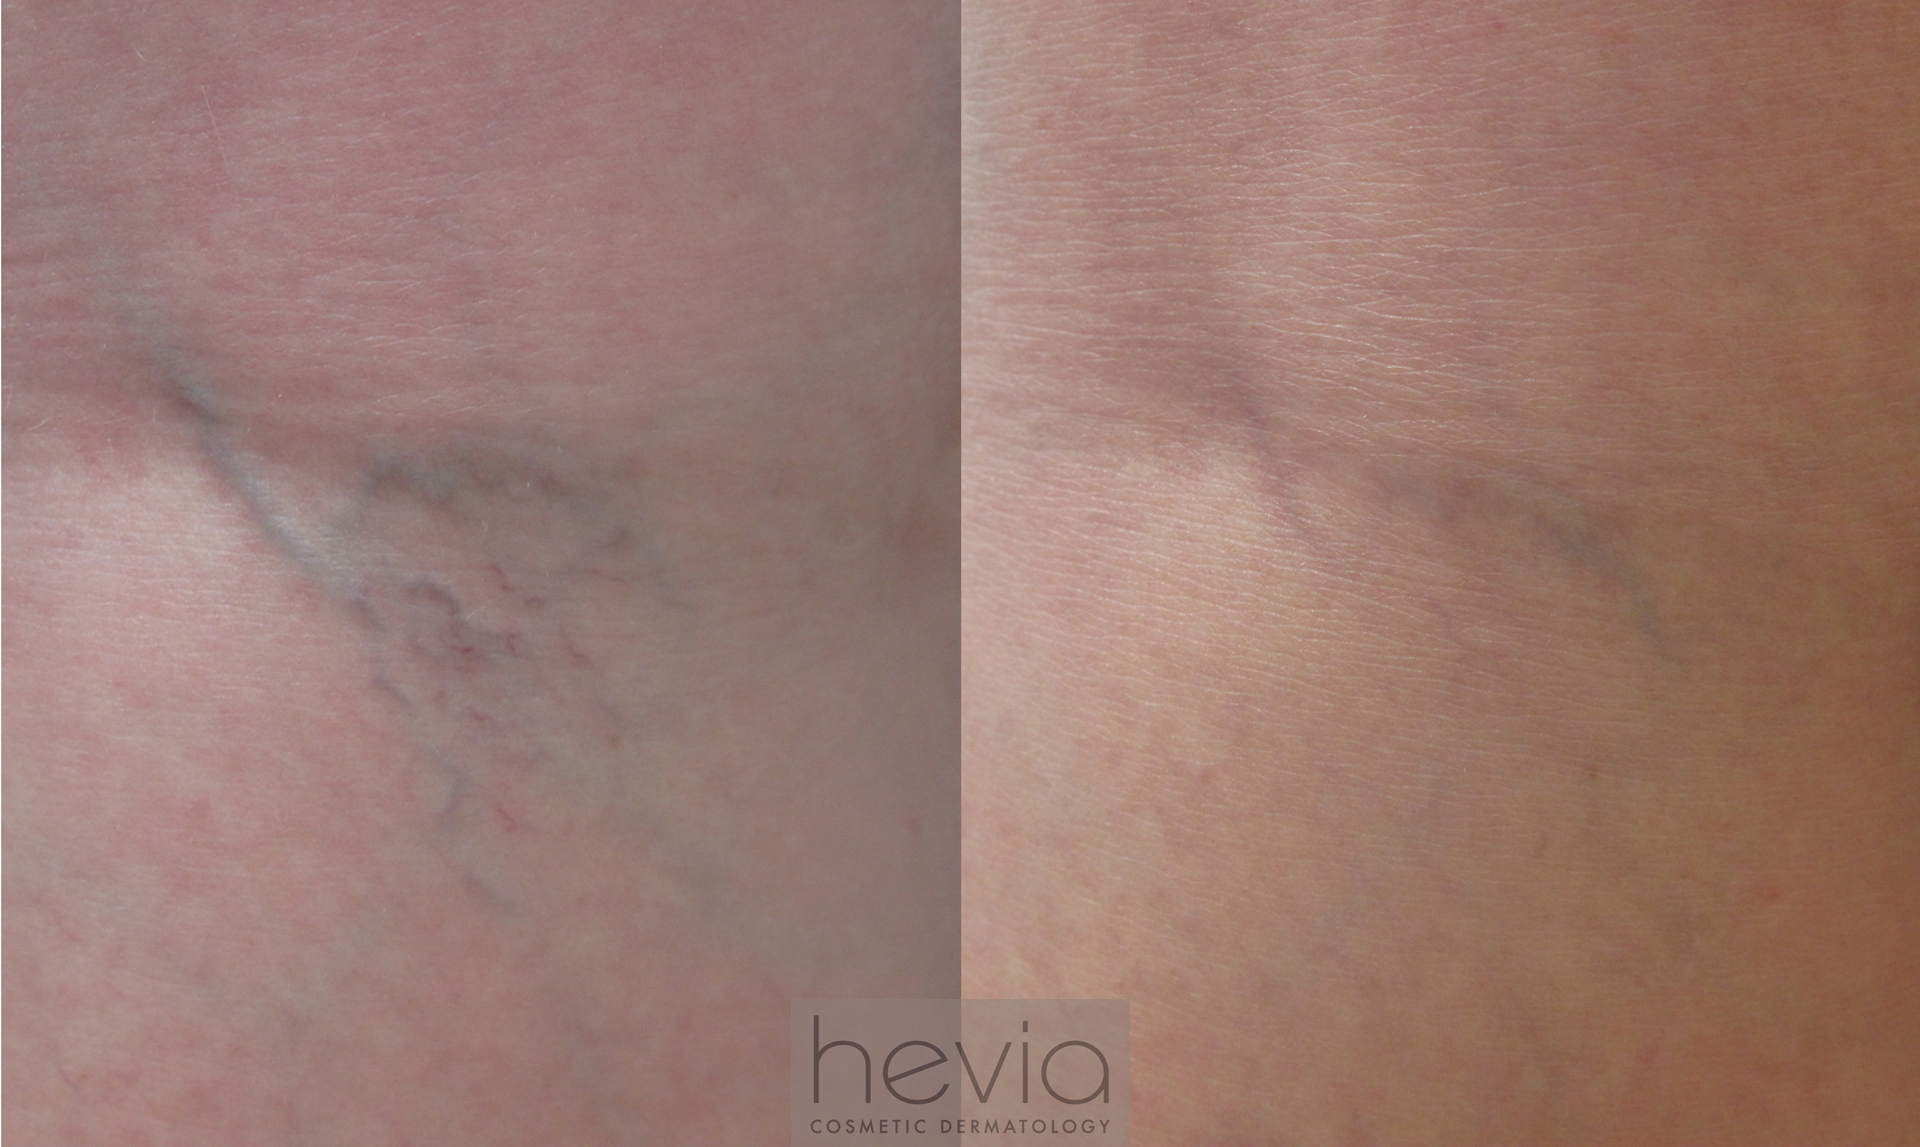 Leg vein sclerotherapy before and after